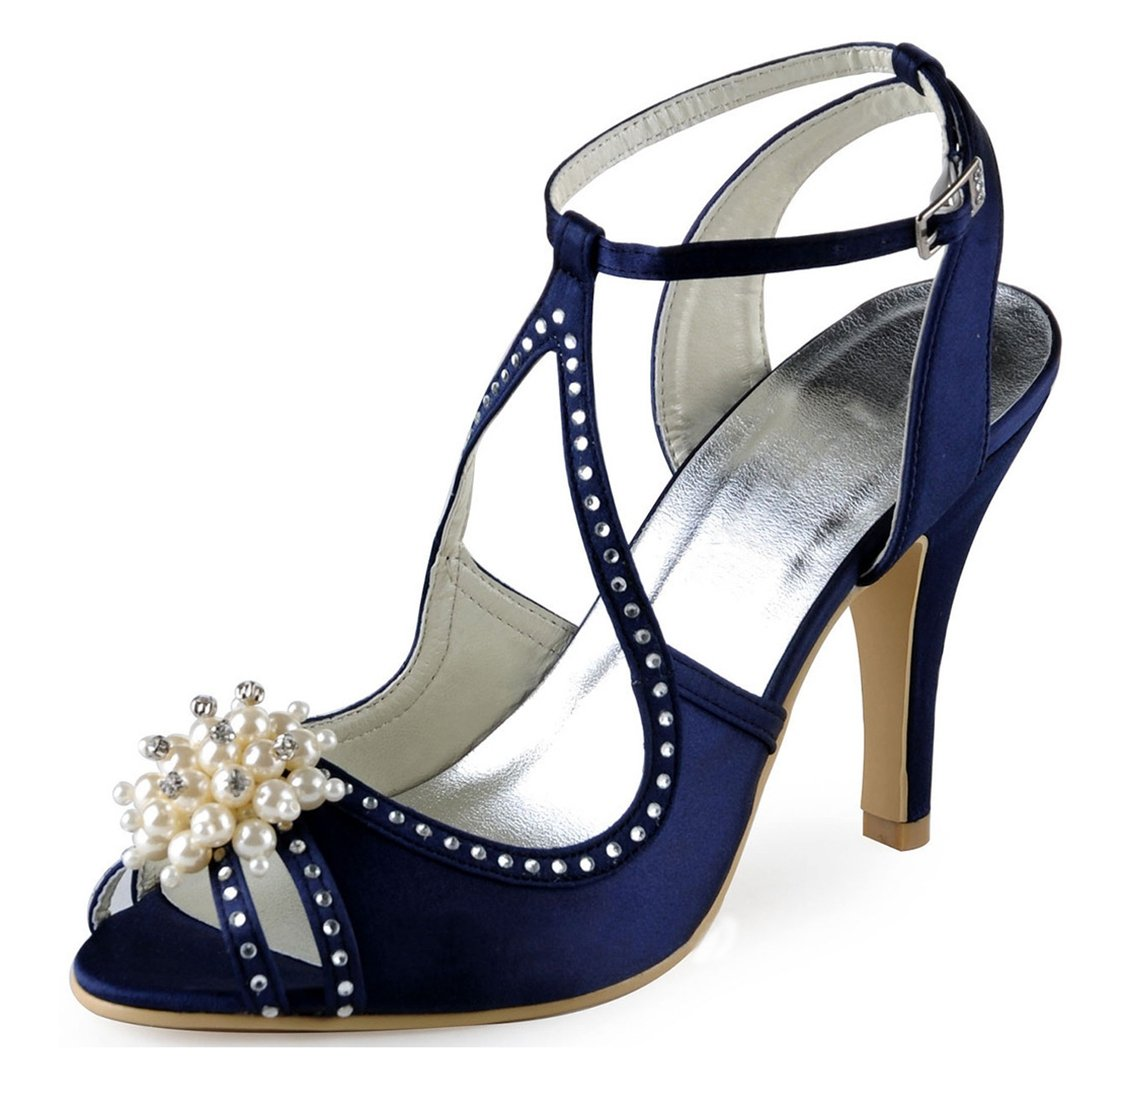 Minitoo MinitooUK-MZ8229, Minitoo Sandales Pour Femme Navy 19948 Pour Blue-7.5cm Heel 0979c39 - boatplans.space